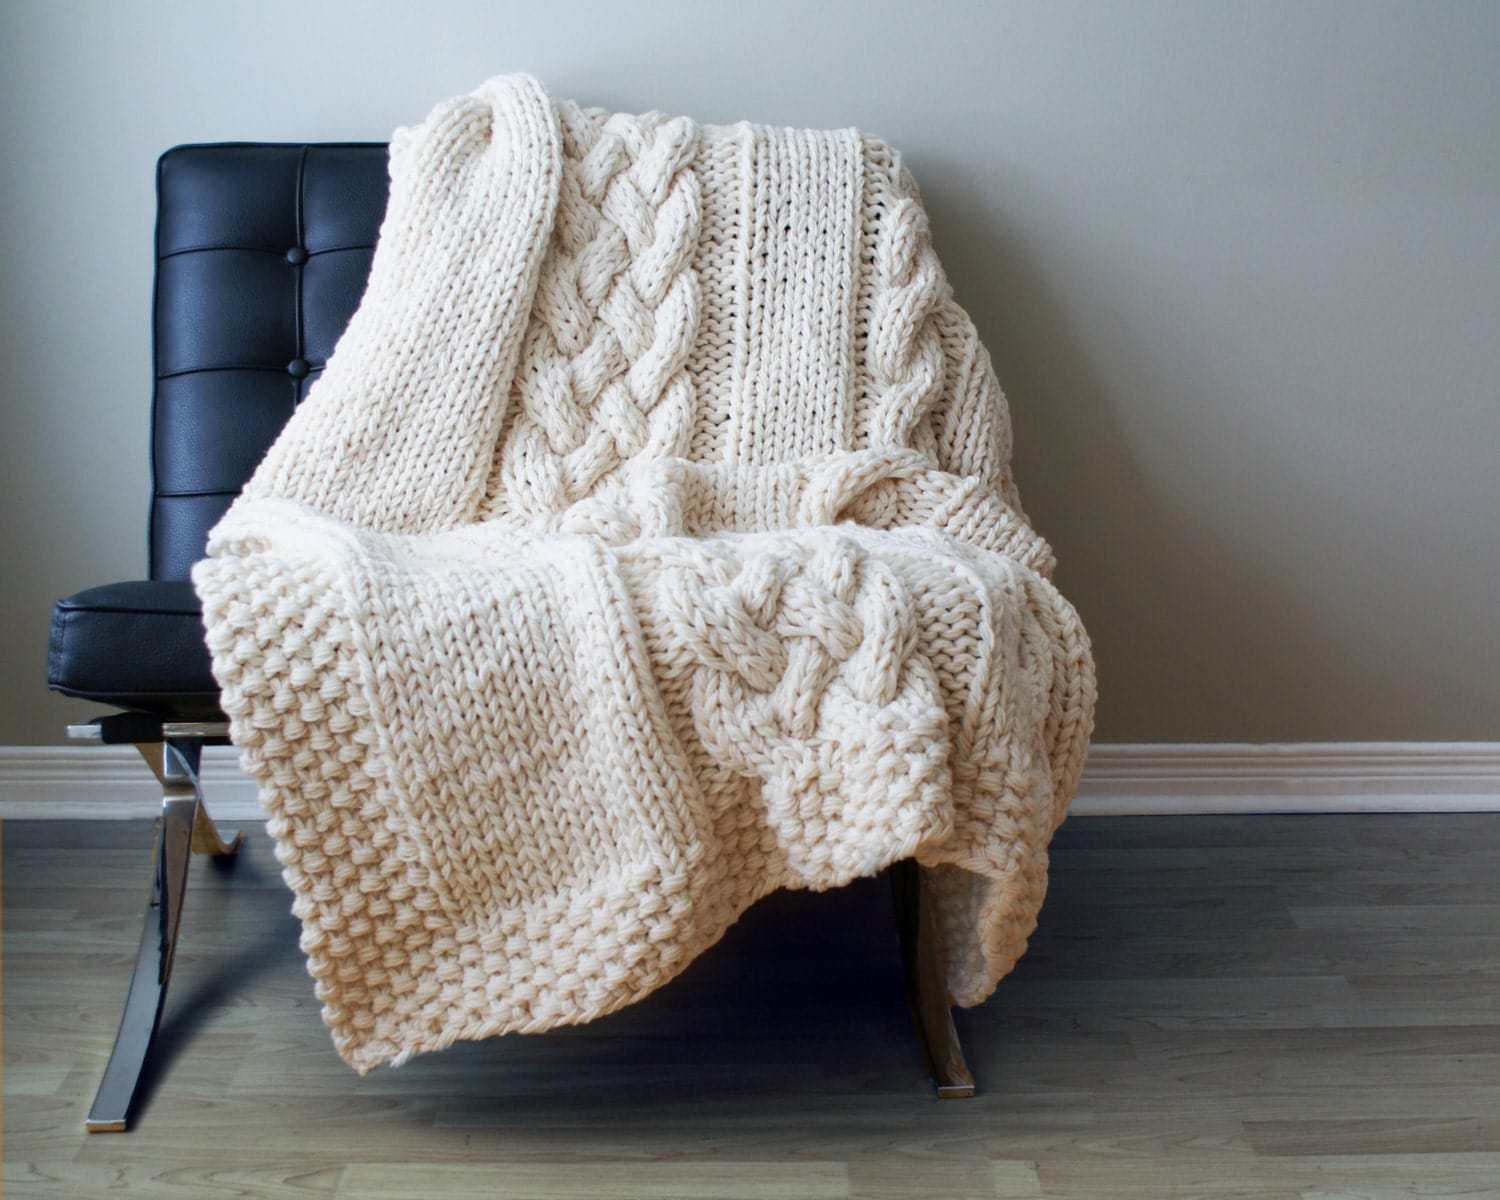 Baby Shawls Knitting Patterns Free : DIY Knitting PATTERN Throw Blanket / Rug Super Chunky Double